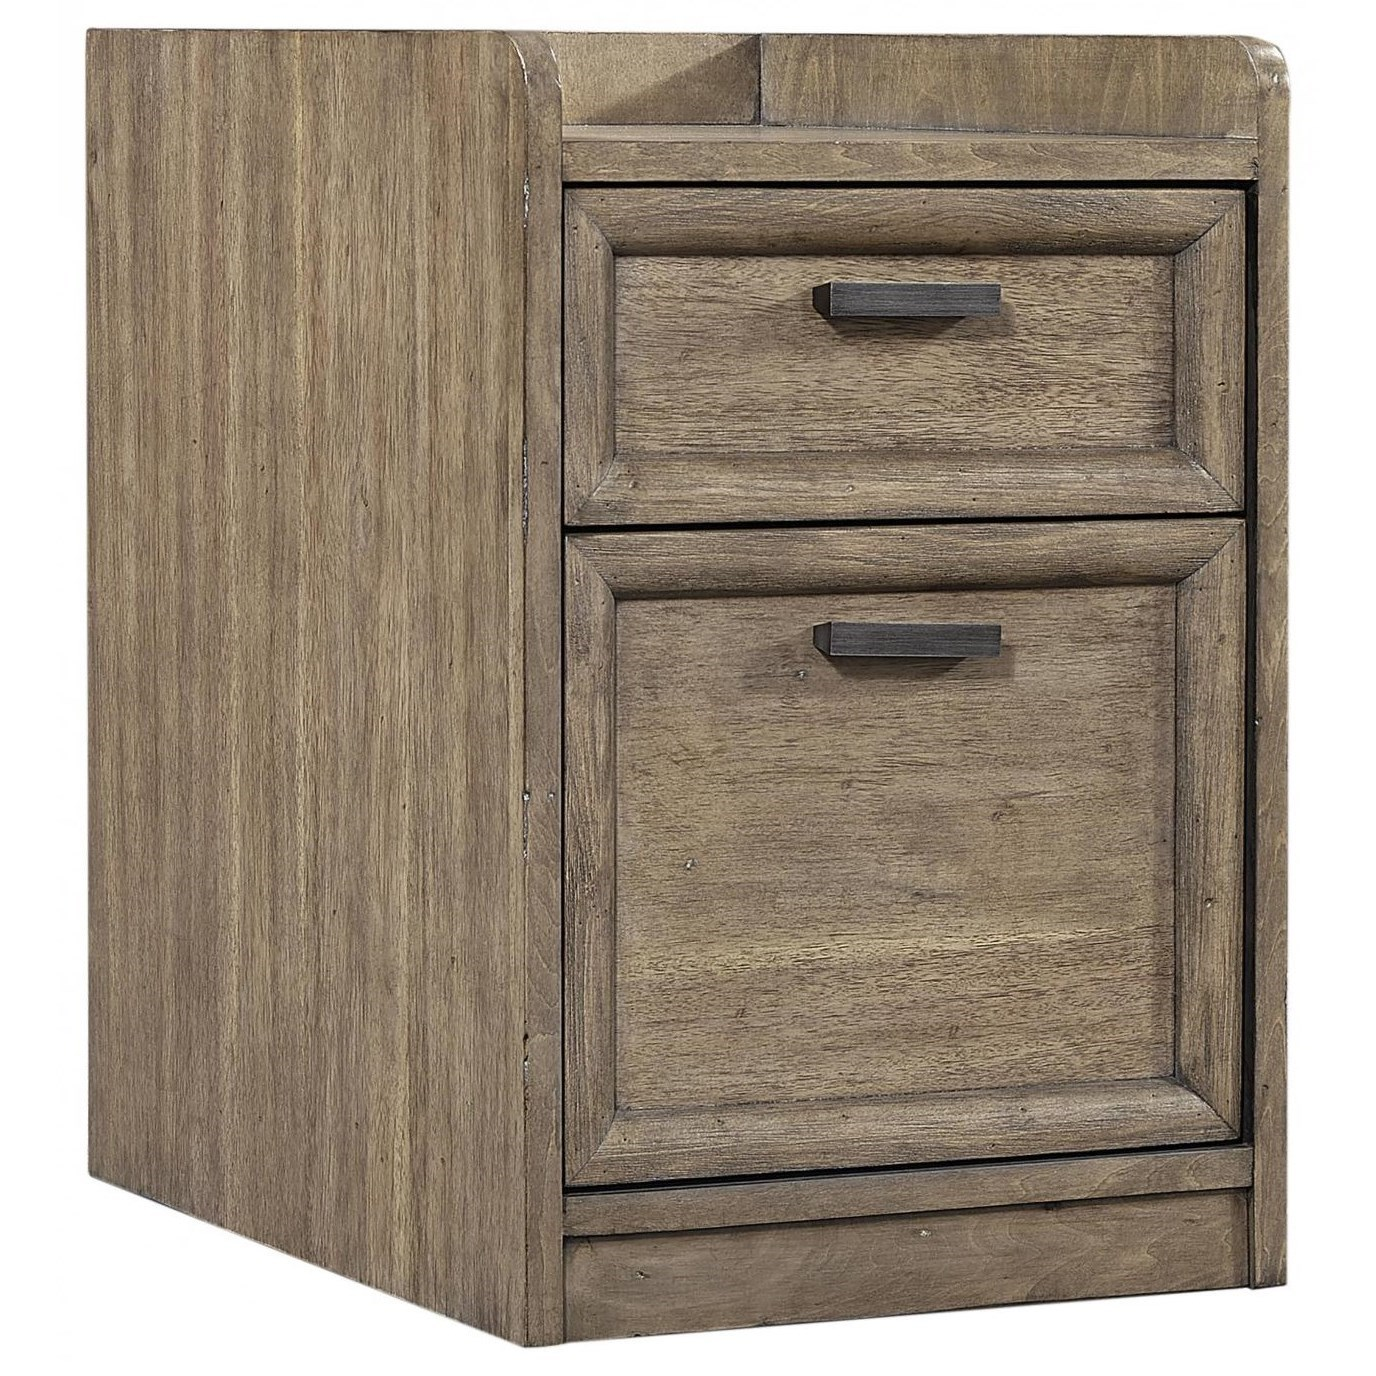 Trellis Rolling File Cabinet at Sadler's Home Furnishings